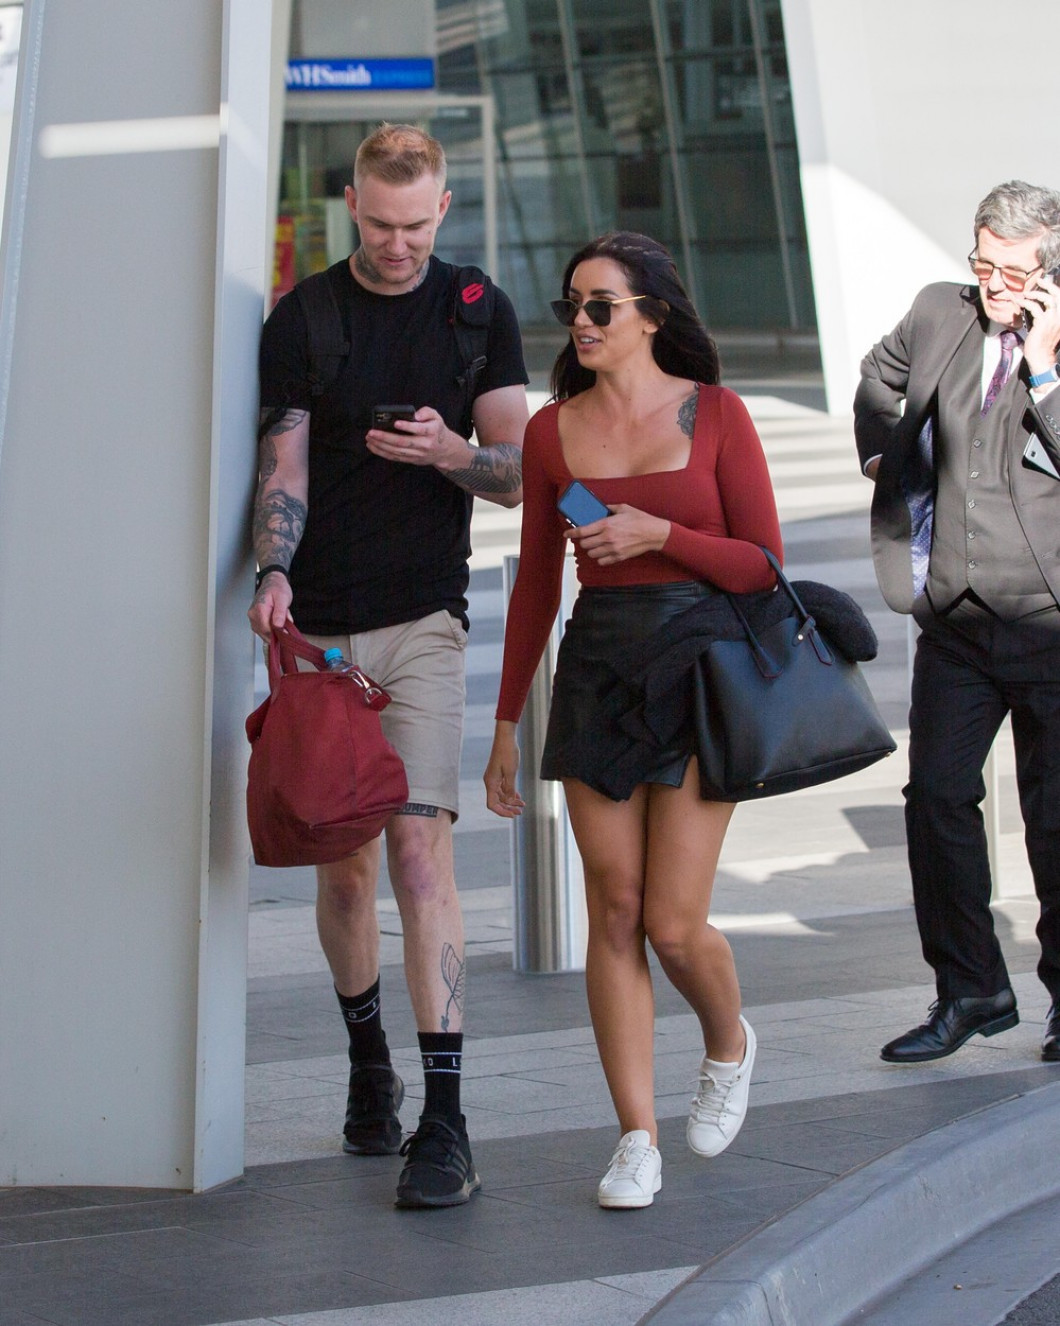 EXCLUSIVE: New man already? Love Island's Vanessa Sierra is all smiles as she touches down in Adelaide with Luke Erwin